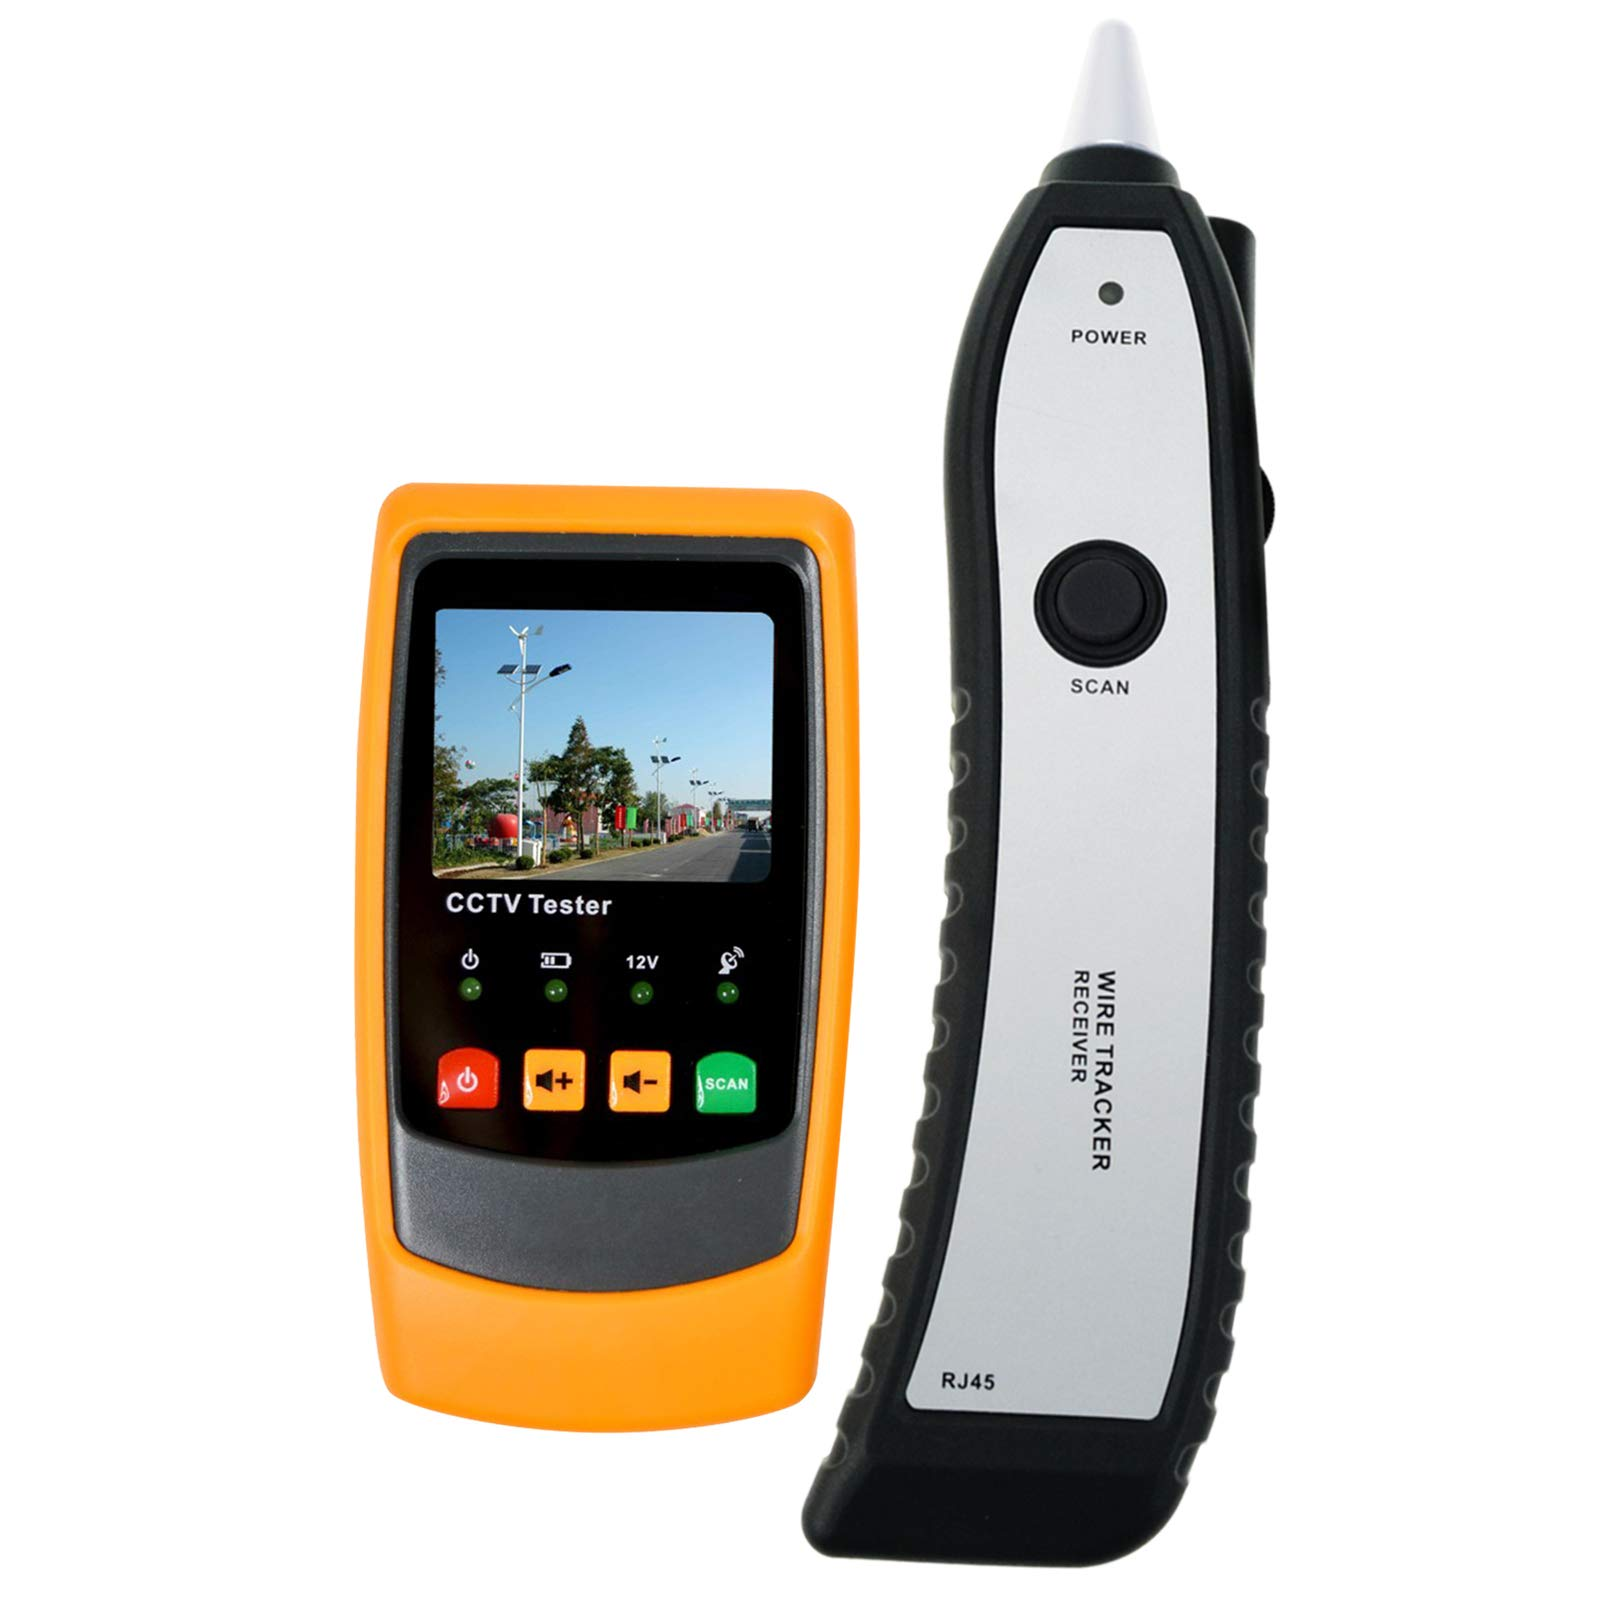 DANOPLUS Instrument CCTV Tester CCTV Cable Tester Security Camera Tester 2.0 inch TFT LCD Wire Tracker Site Installation